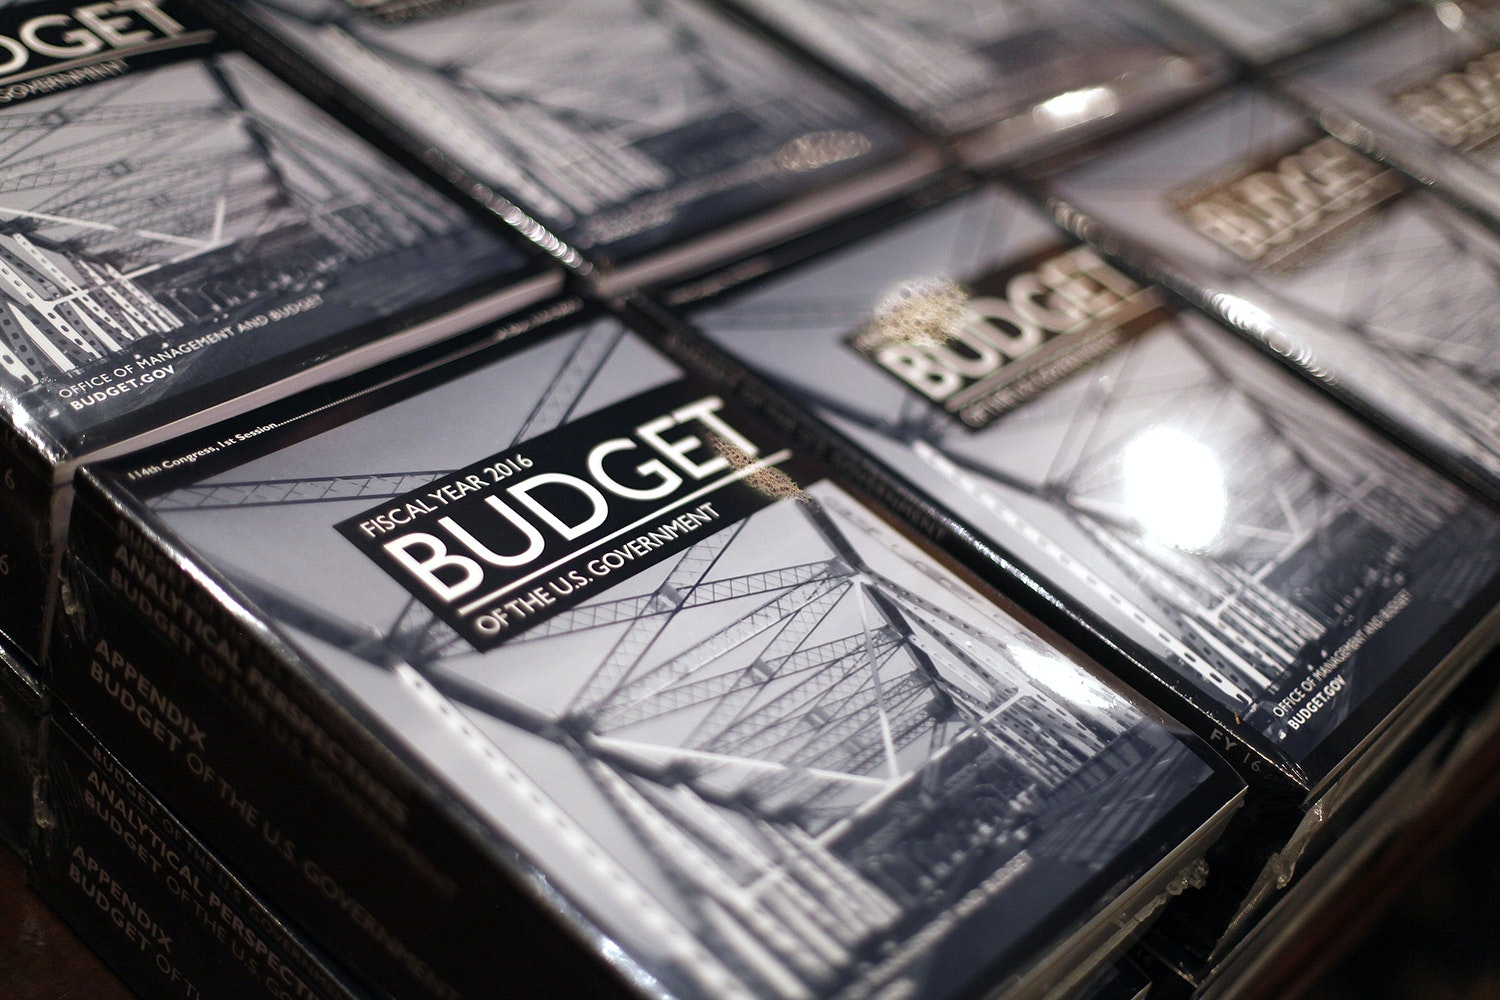 Zero Based Budgeting Everything Old Is New Again